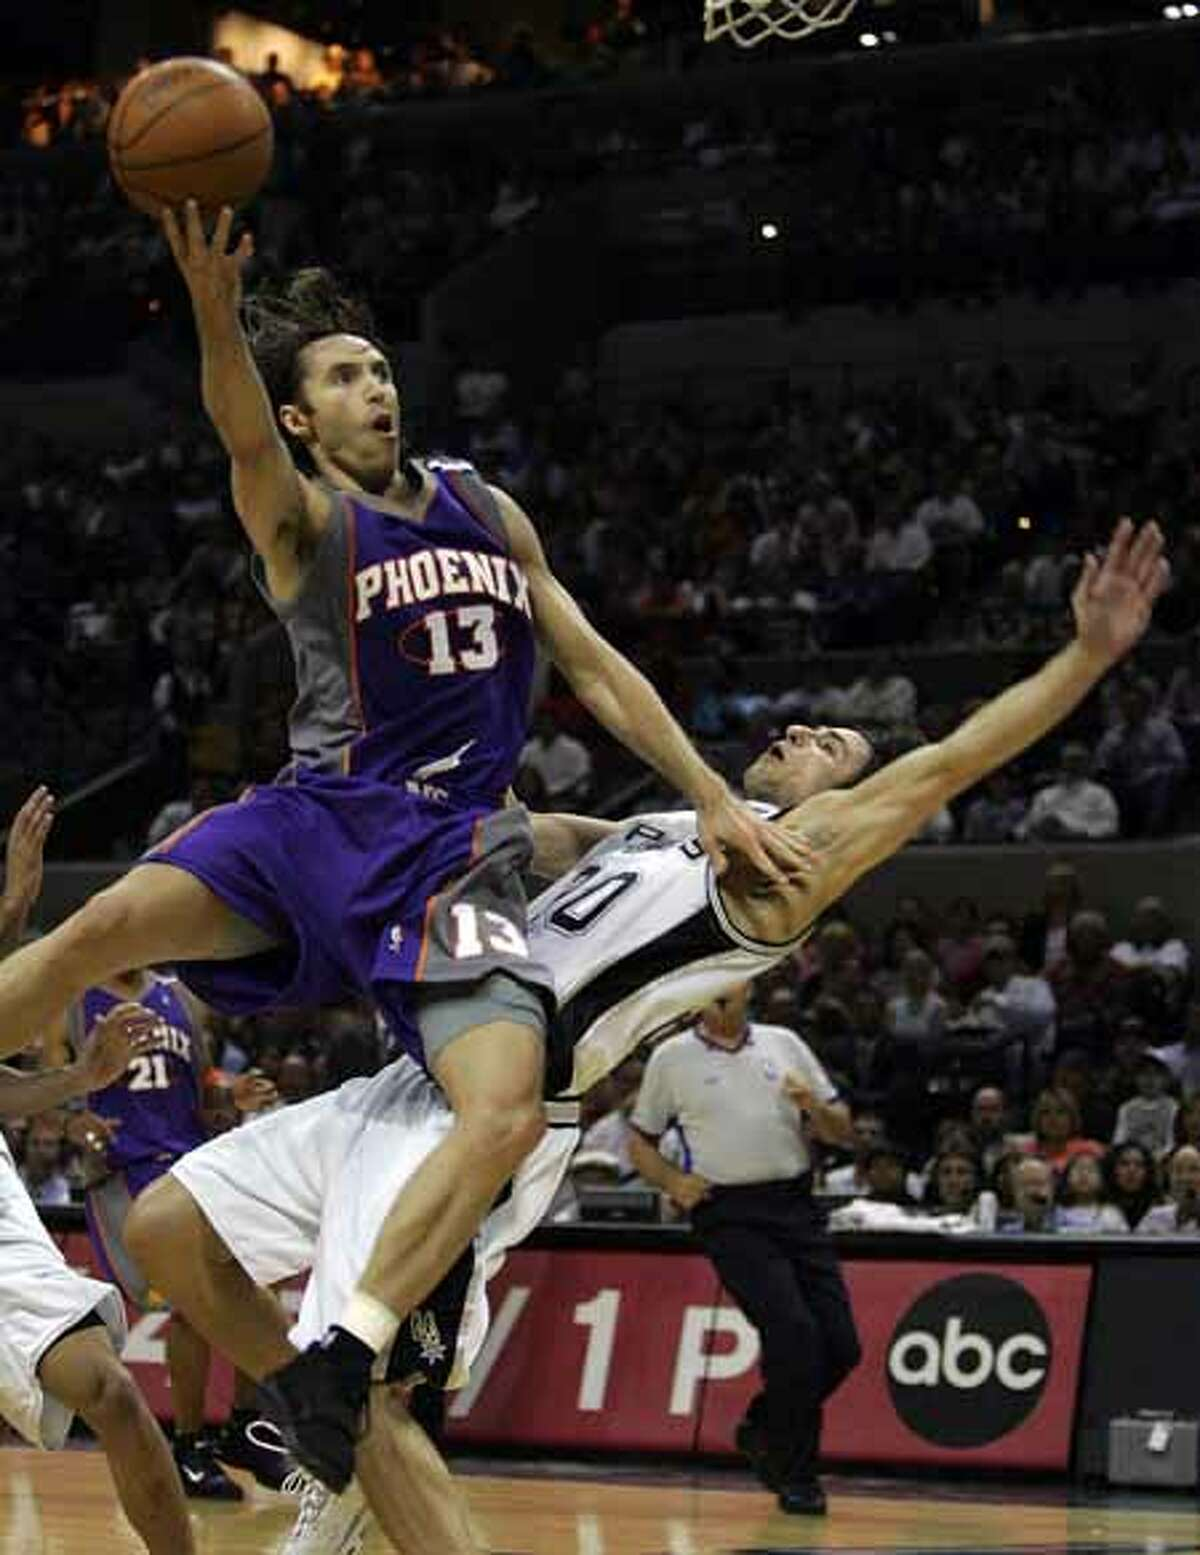 The Phoenix Suns' Steve Nash drives through the defense of the Spurs' Manu Ginobili during the first quarter of Game 4 of the Western Conference Finals at the SBC Center on May 30, 2005.